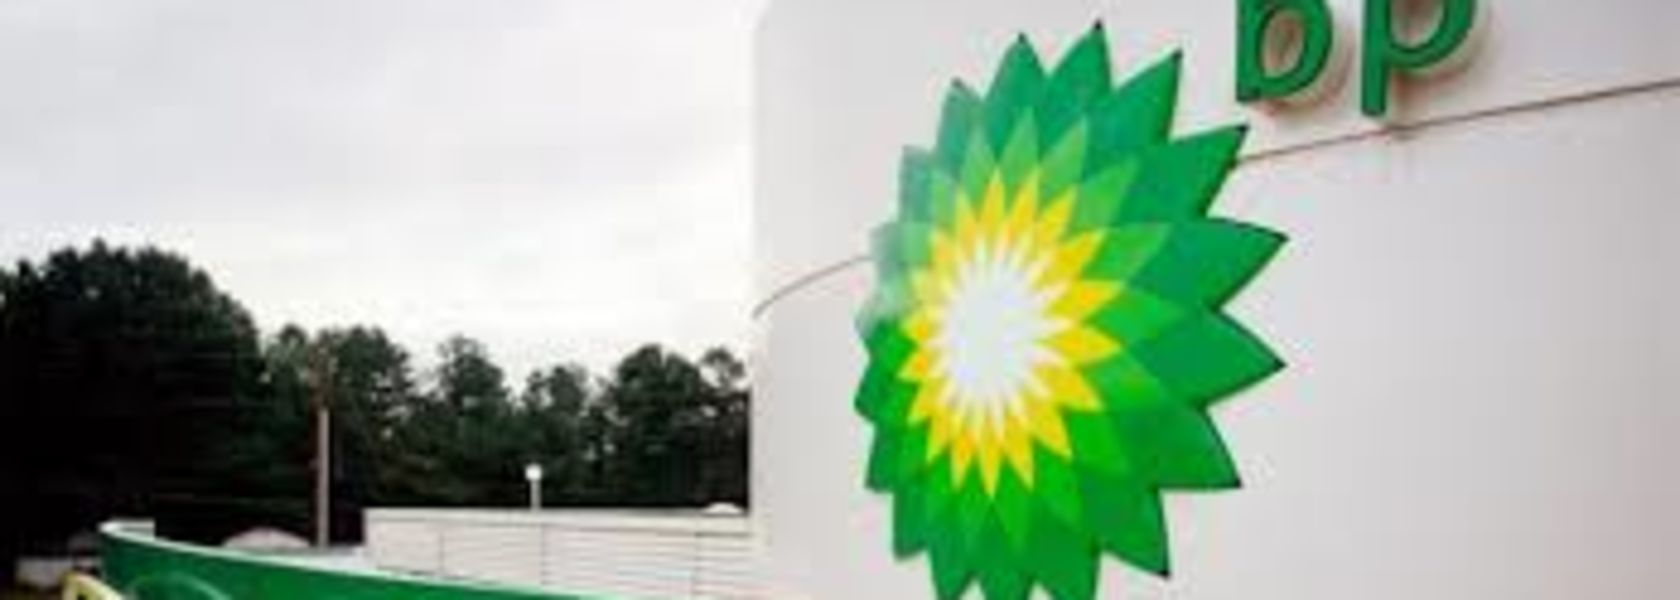 BP to write down huge swathe of assets by US$17.5B